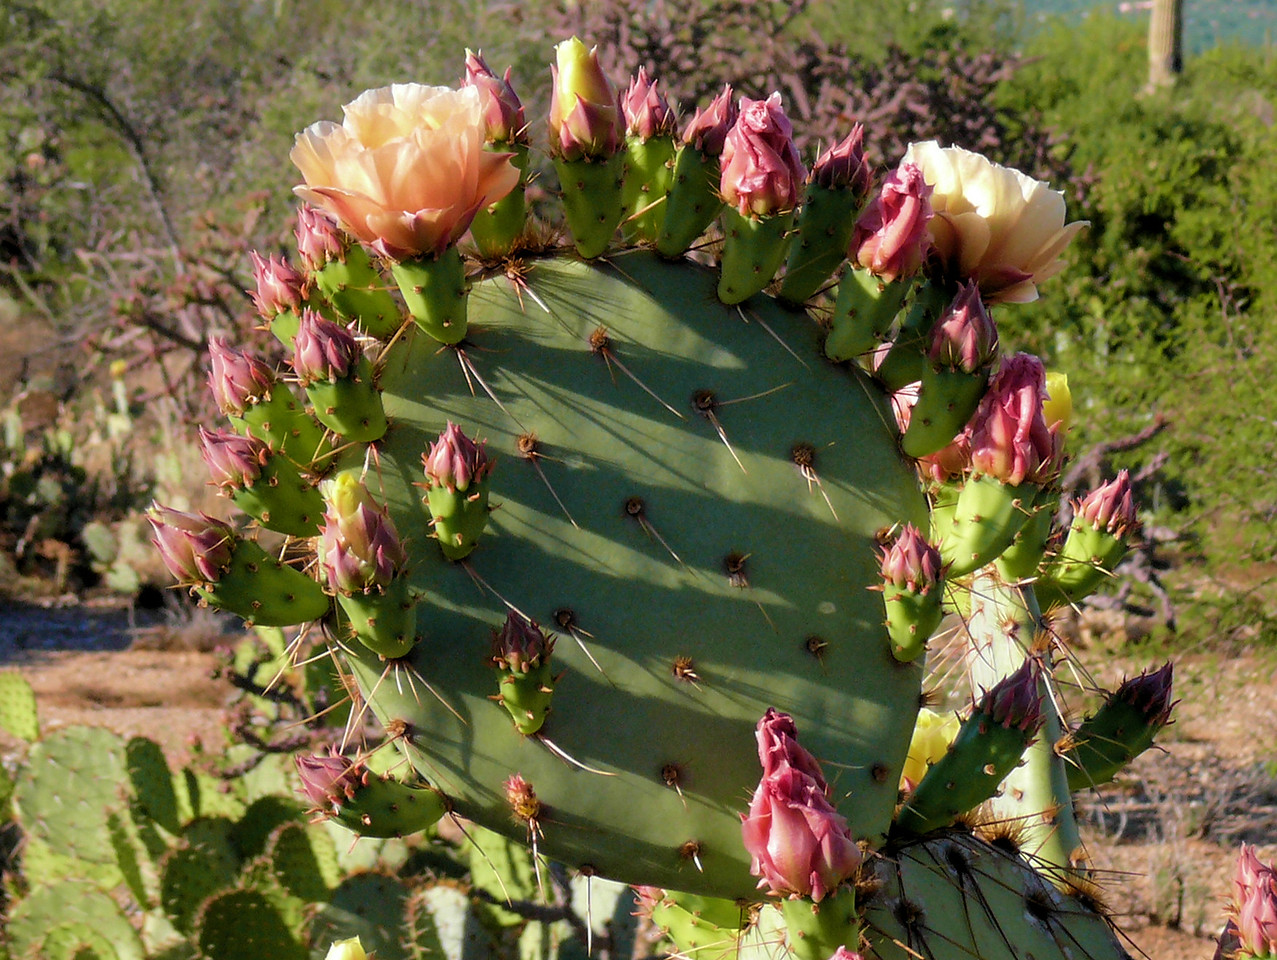 Circle-of-Cactus Blossums